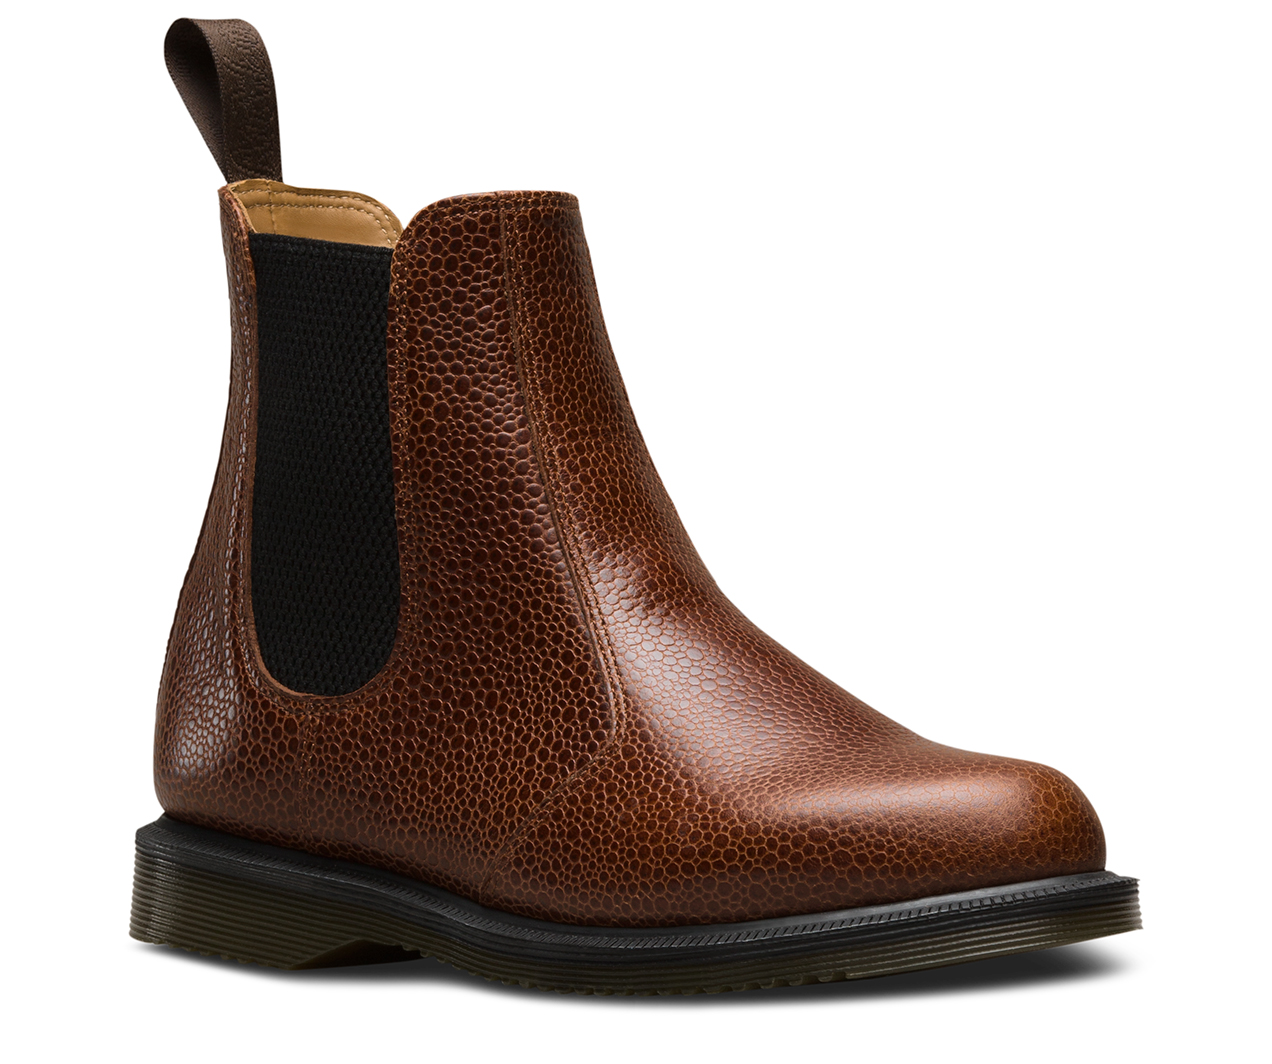 Kensington Flora Chestnut Chelsea Boots - Chestnut coastal Dr. Martens Wiki Cheap Online Reliable Cheap Price Real Clearance The Cheapest Factory Price XSibTno